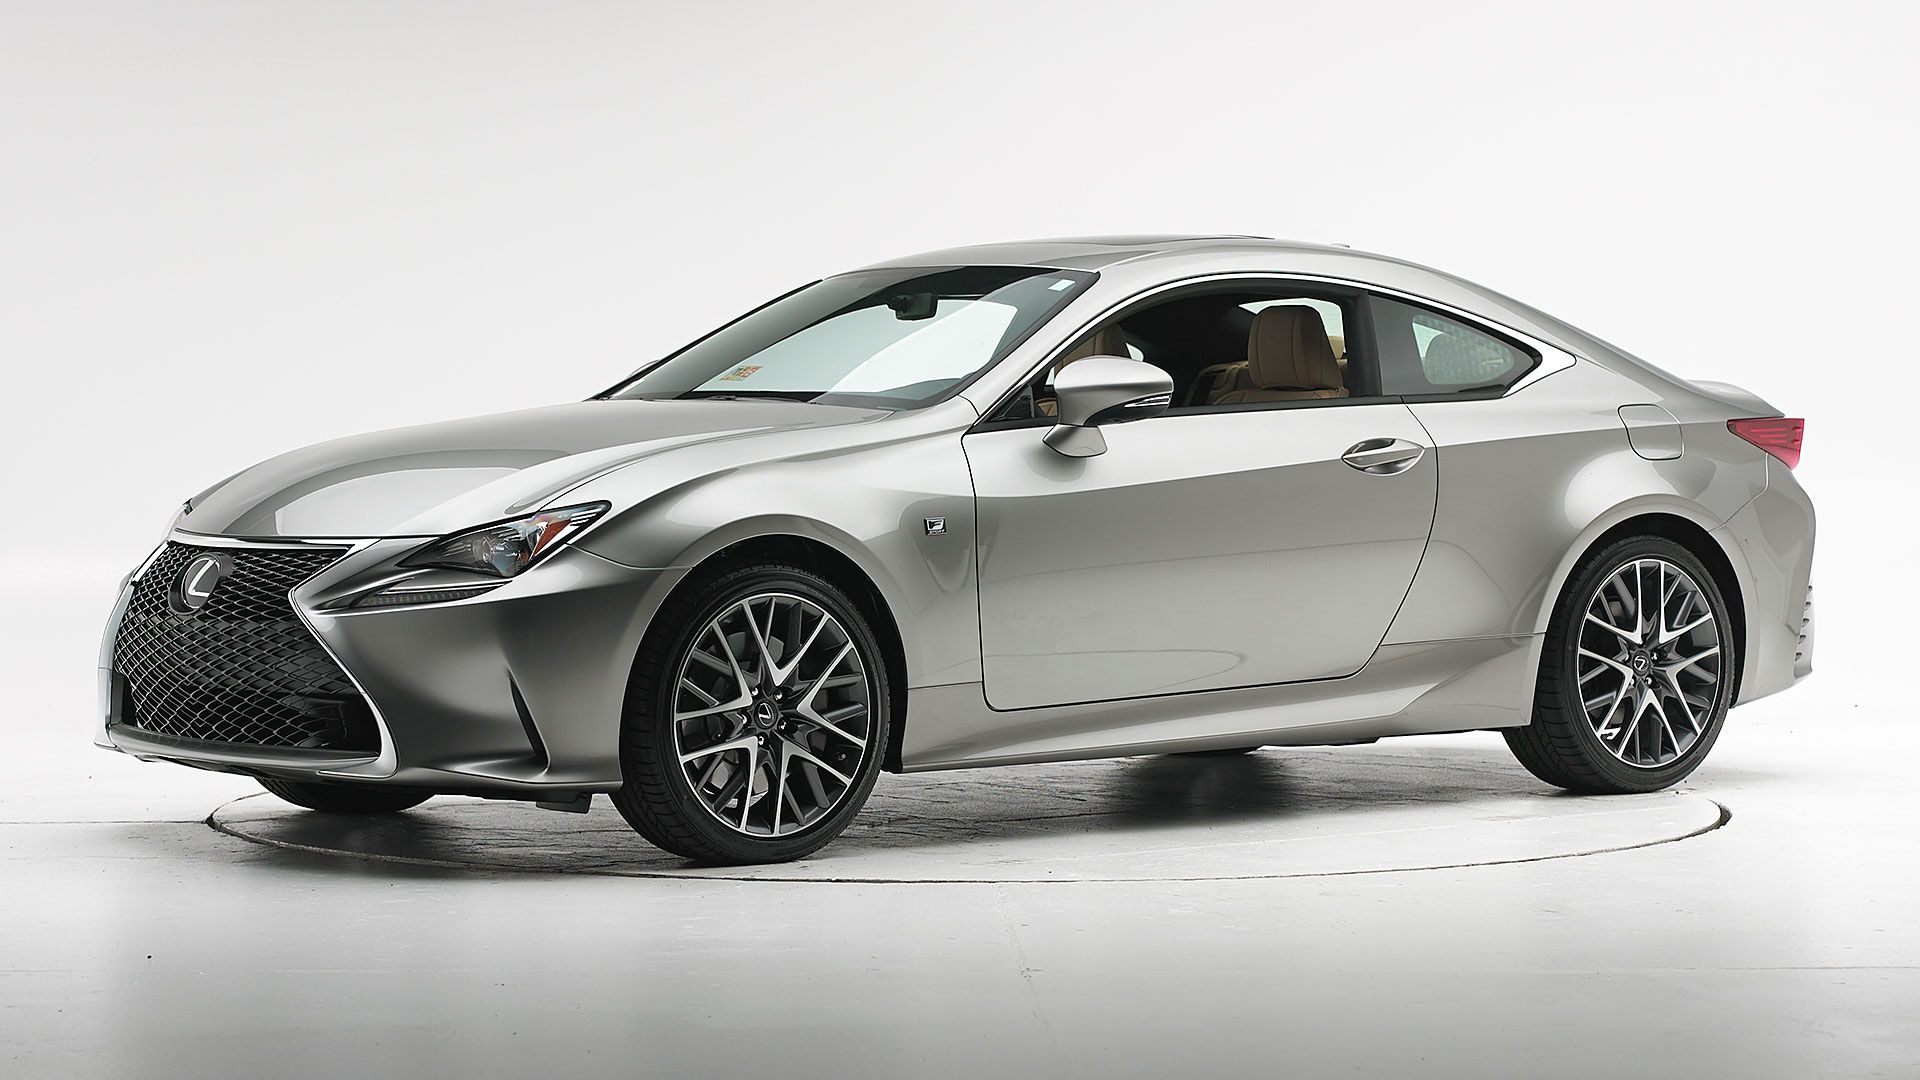 2016 Lexus RC 2-door coupe